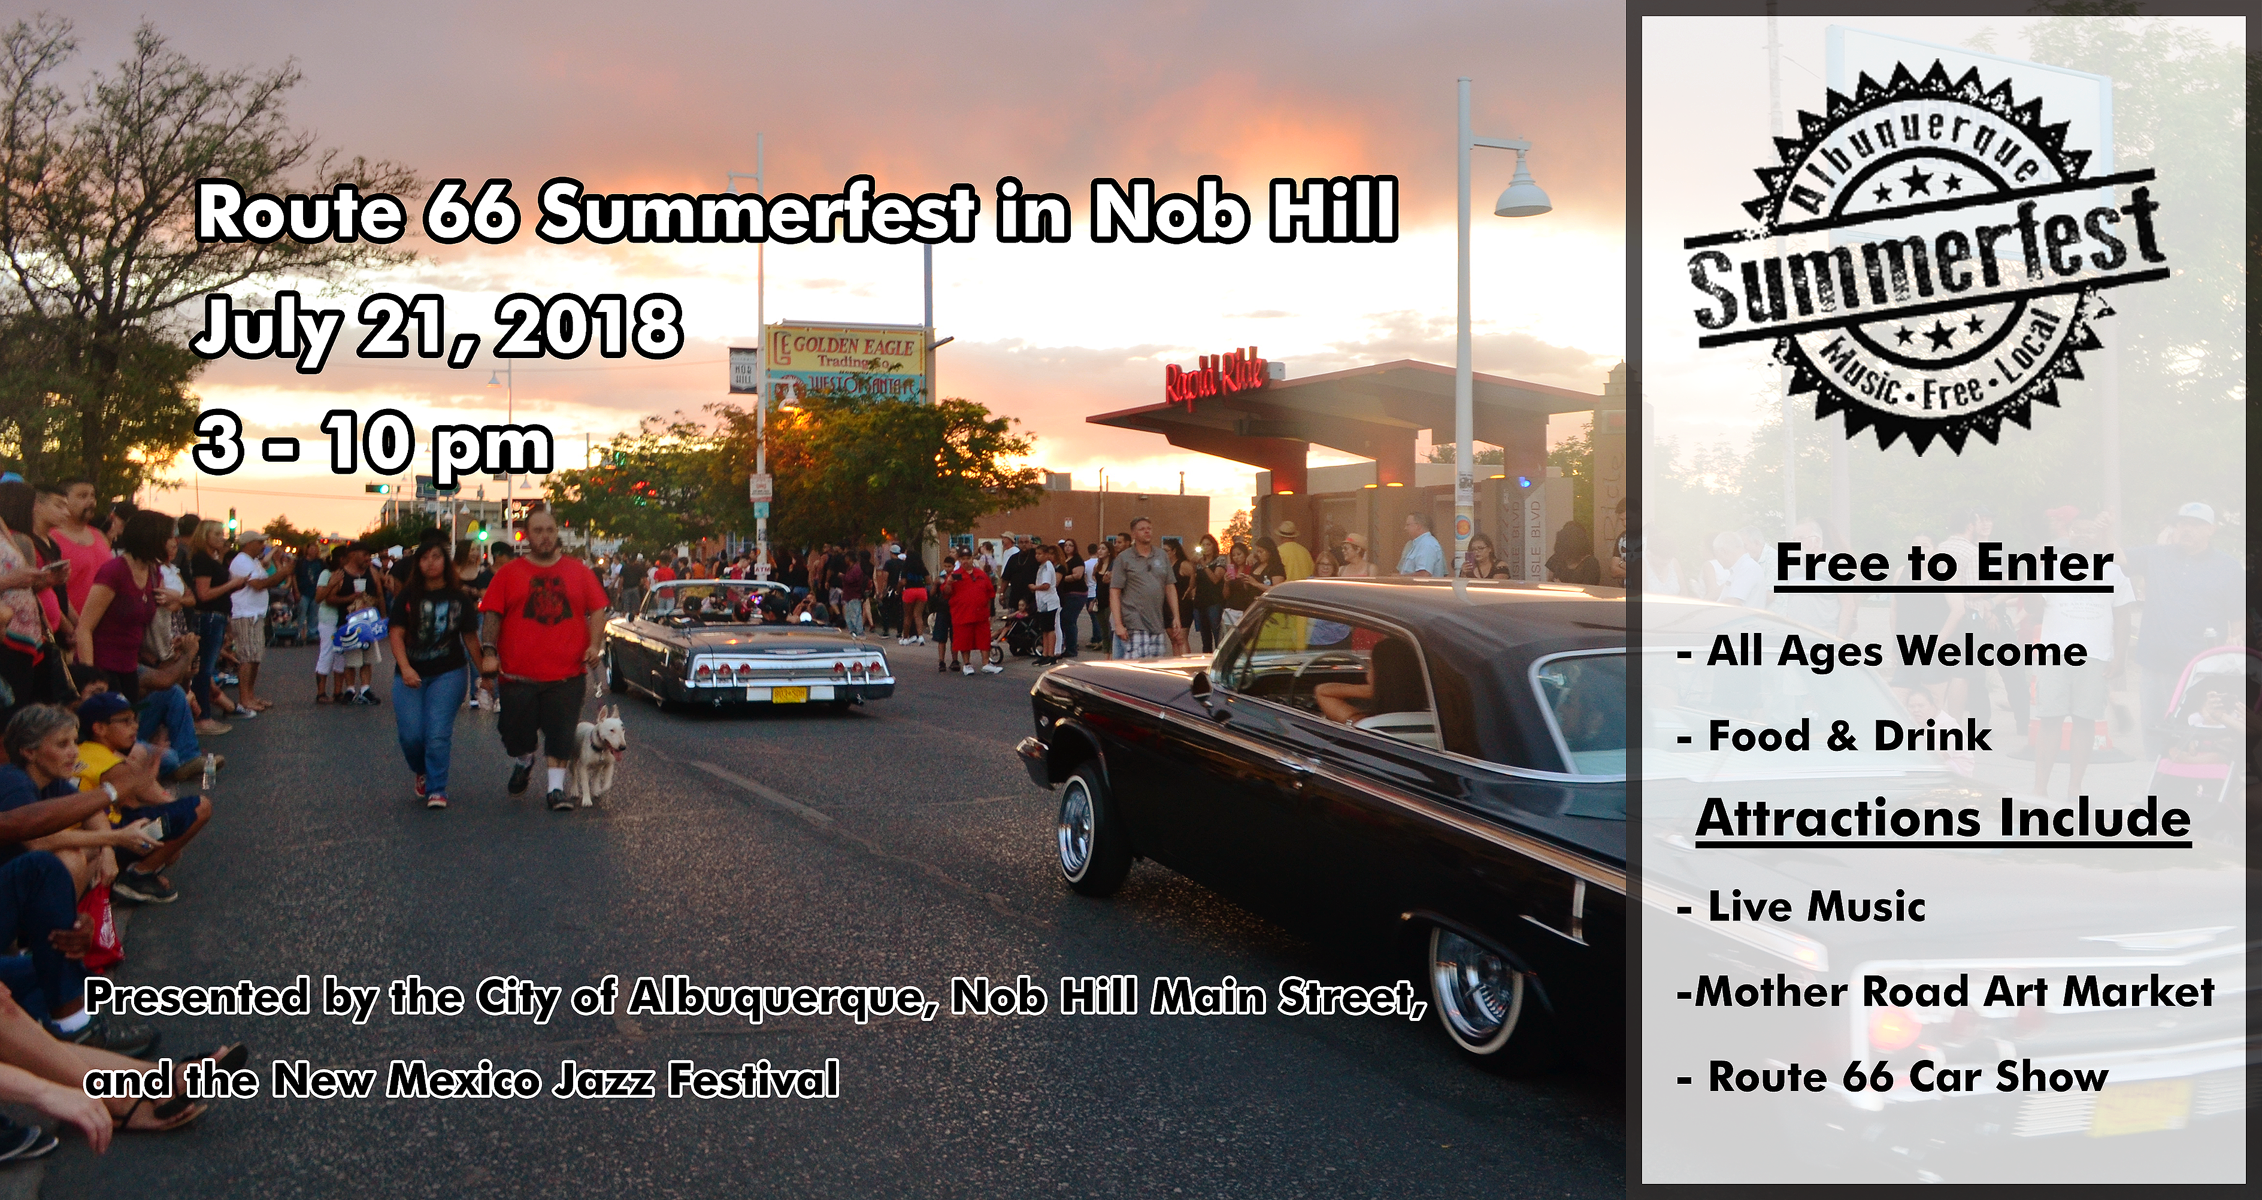 Summerfest On Route 66 In Nob Hill Nob Hill Main Street